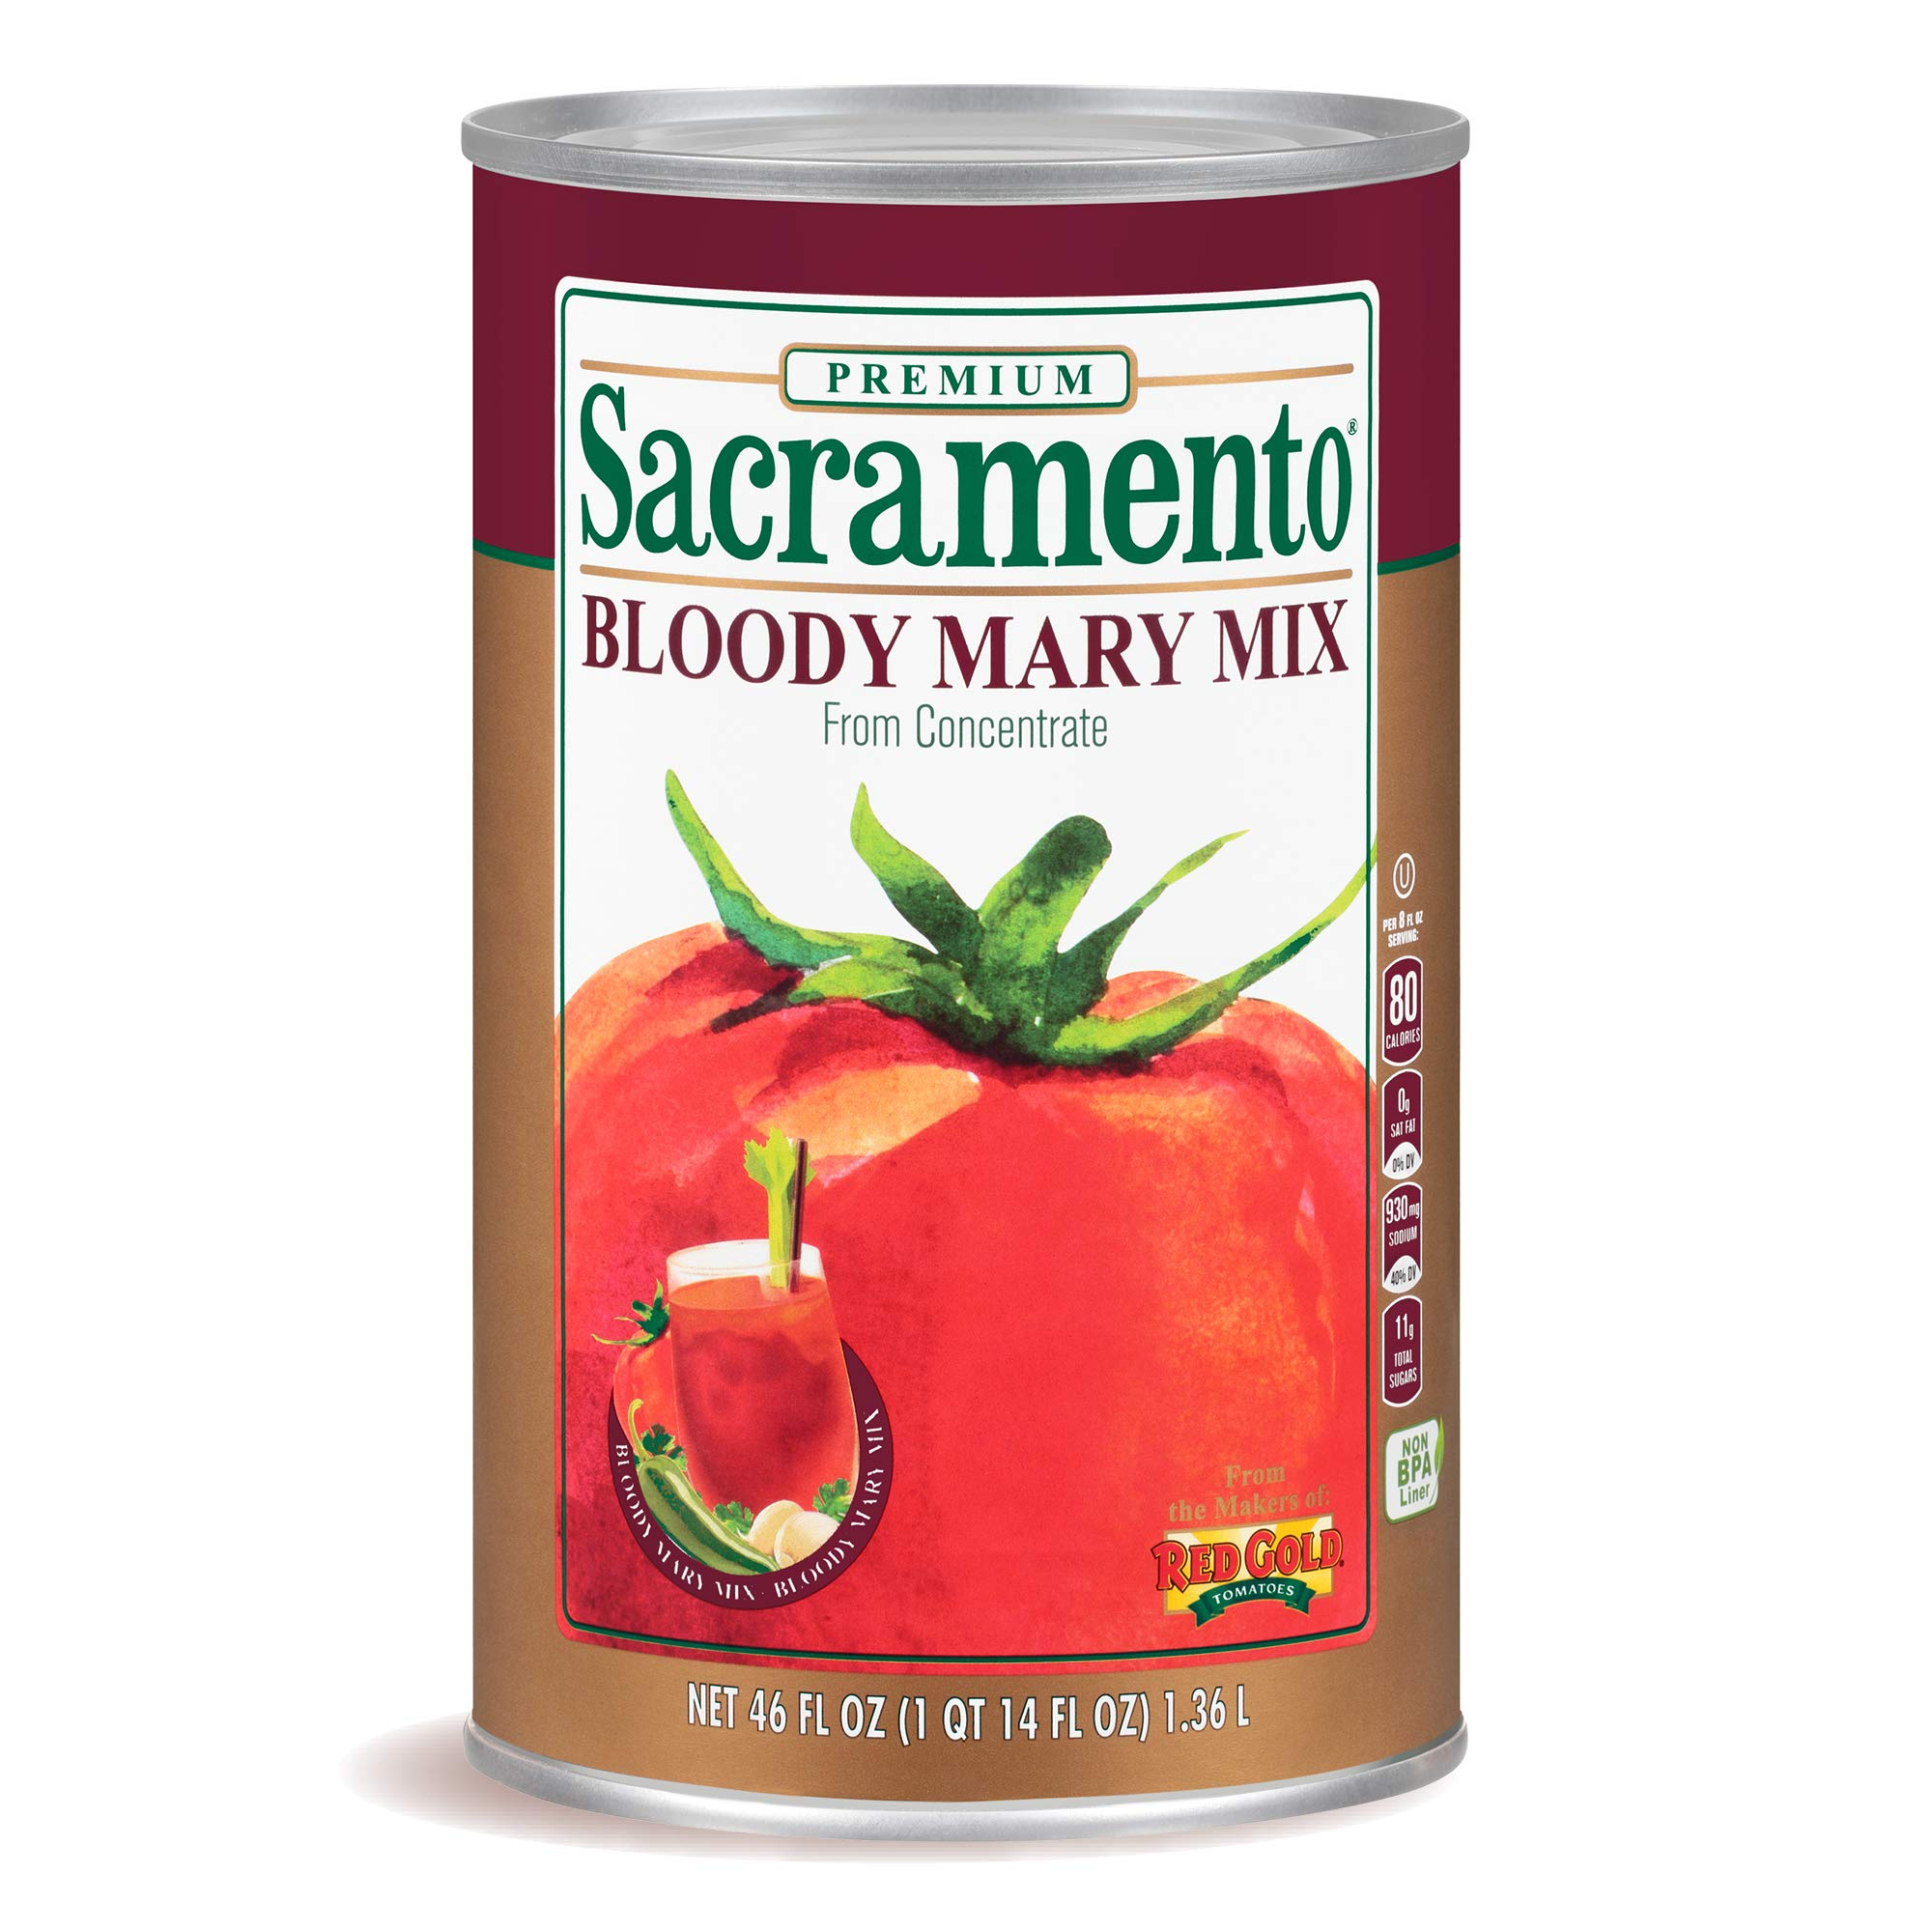 Sacramento Bloody Mary Mix, 46oz Can (Pack of 12)